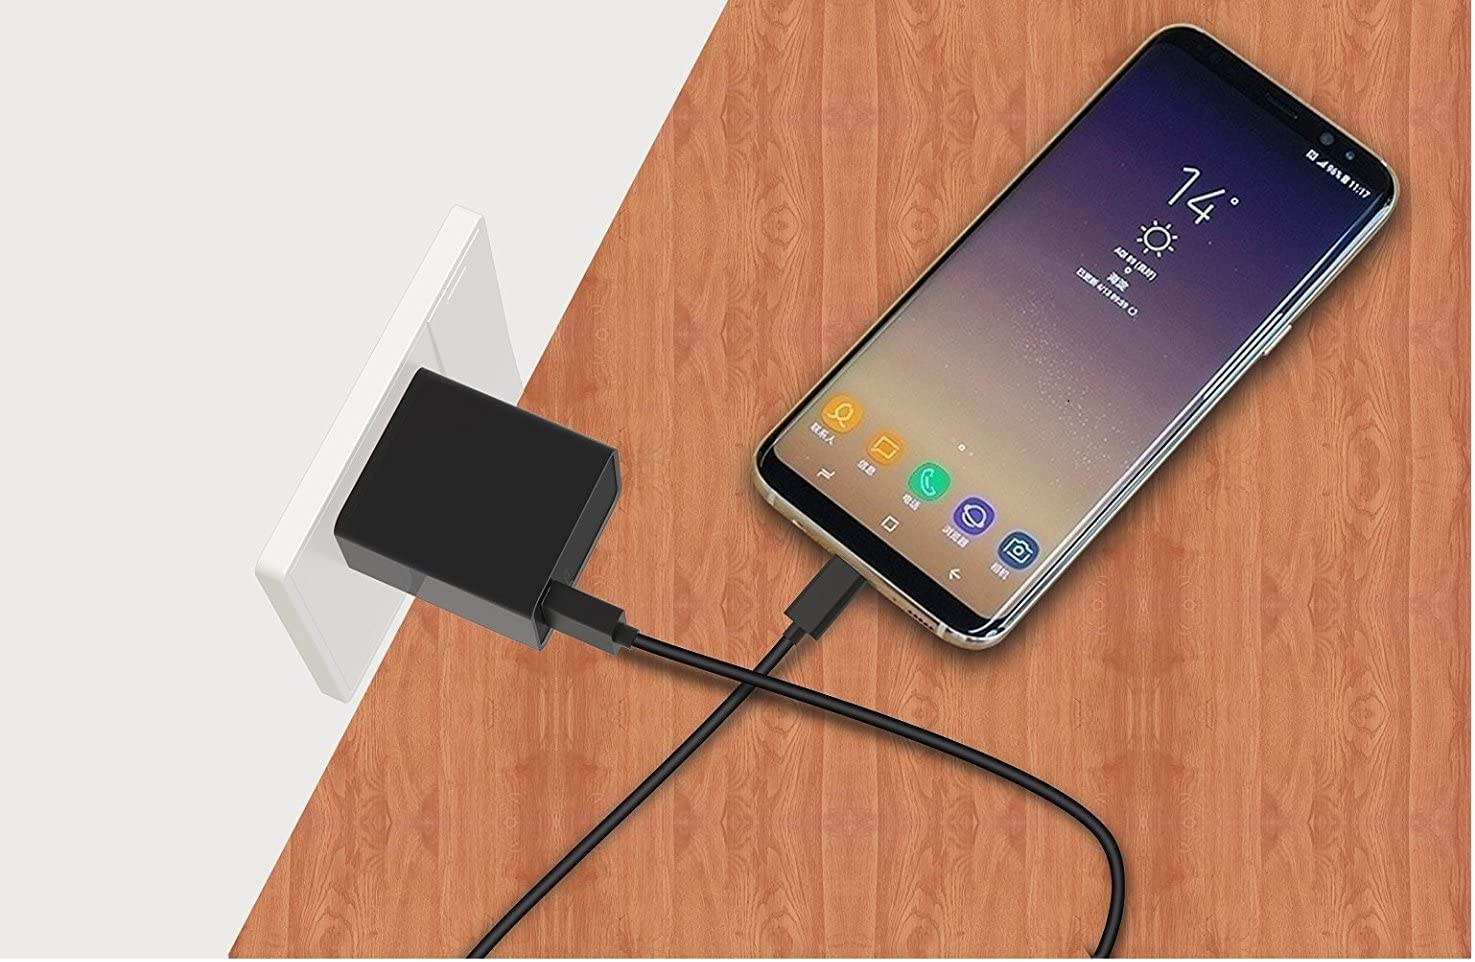 {Car Charger Note 8//Galaxy S8//Galaxy S8 Plus// USB-C Wall Charger 2 Type-C Cable} Fast Charging 80/% faster charging! USB UL-Certified QC 3.0 Kit by Ixir Compatible with Samsung Products